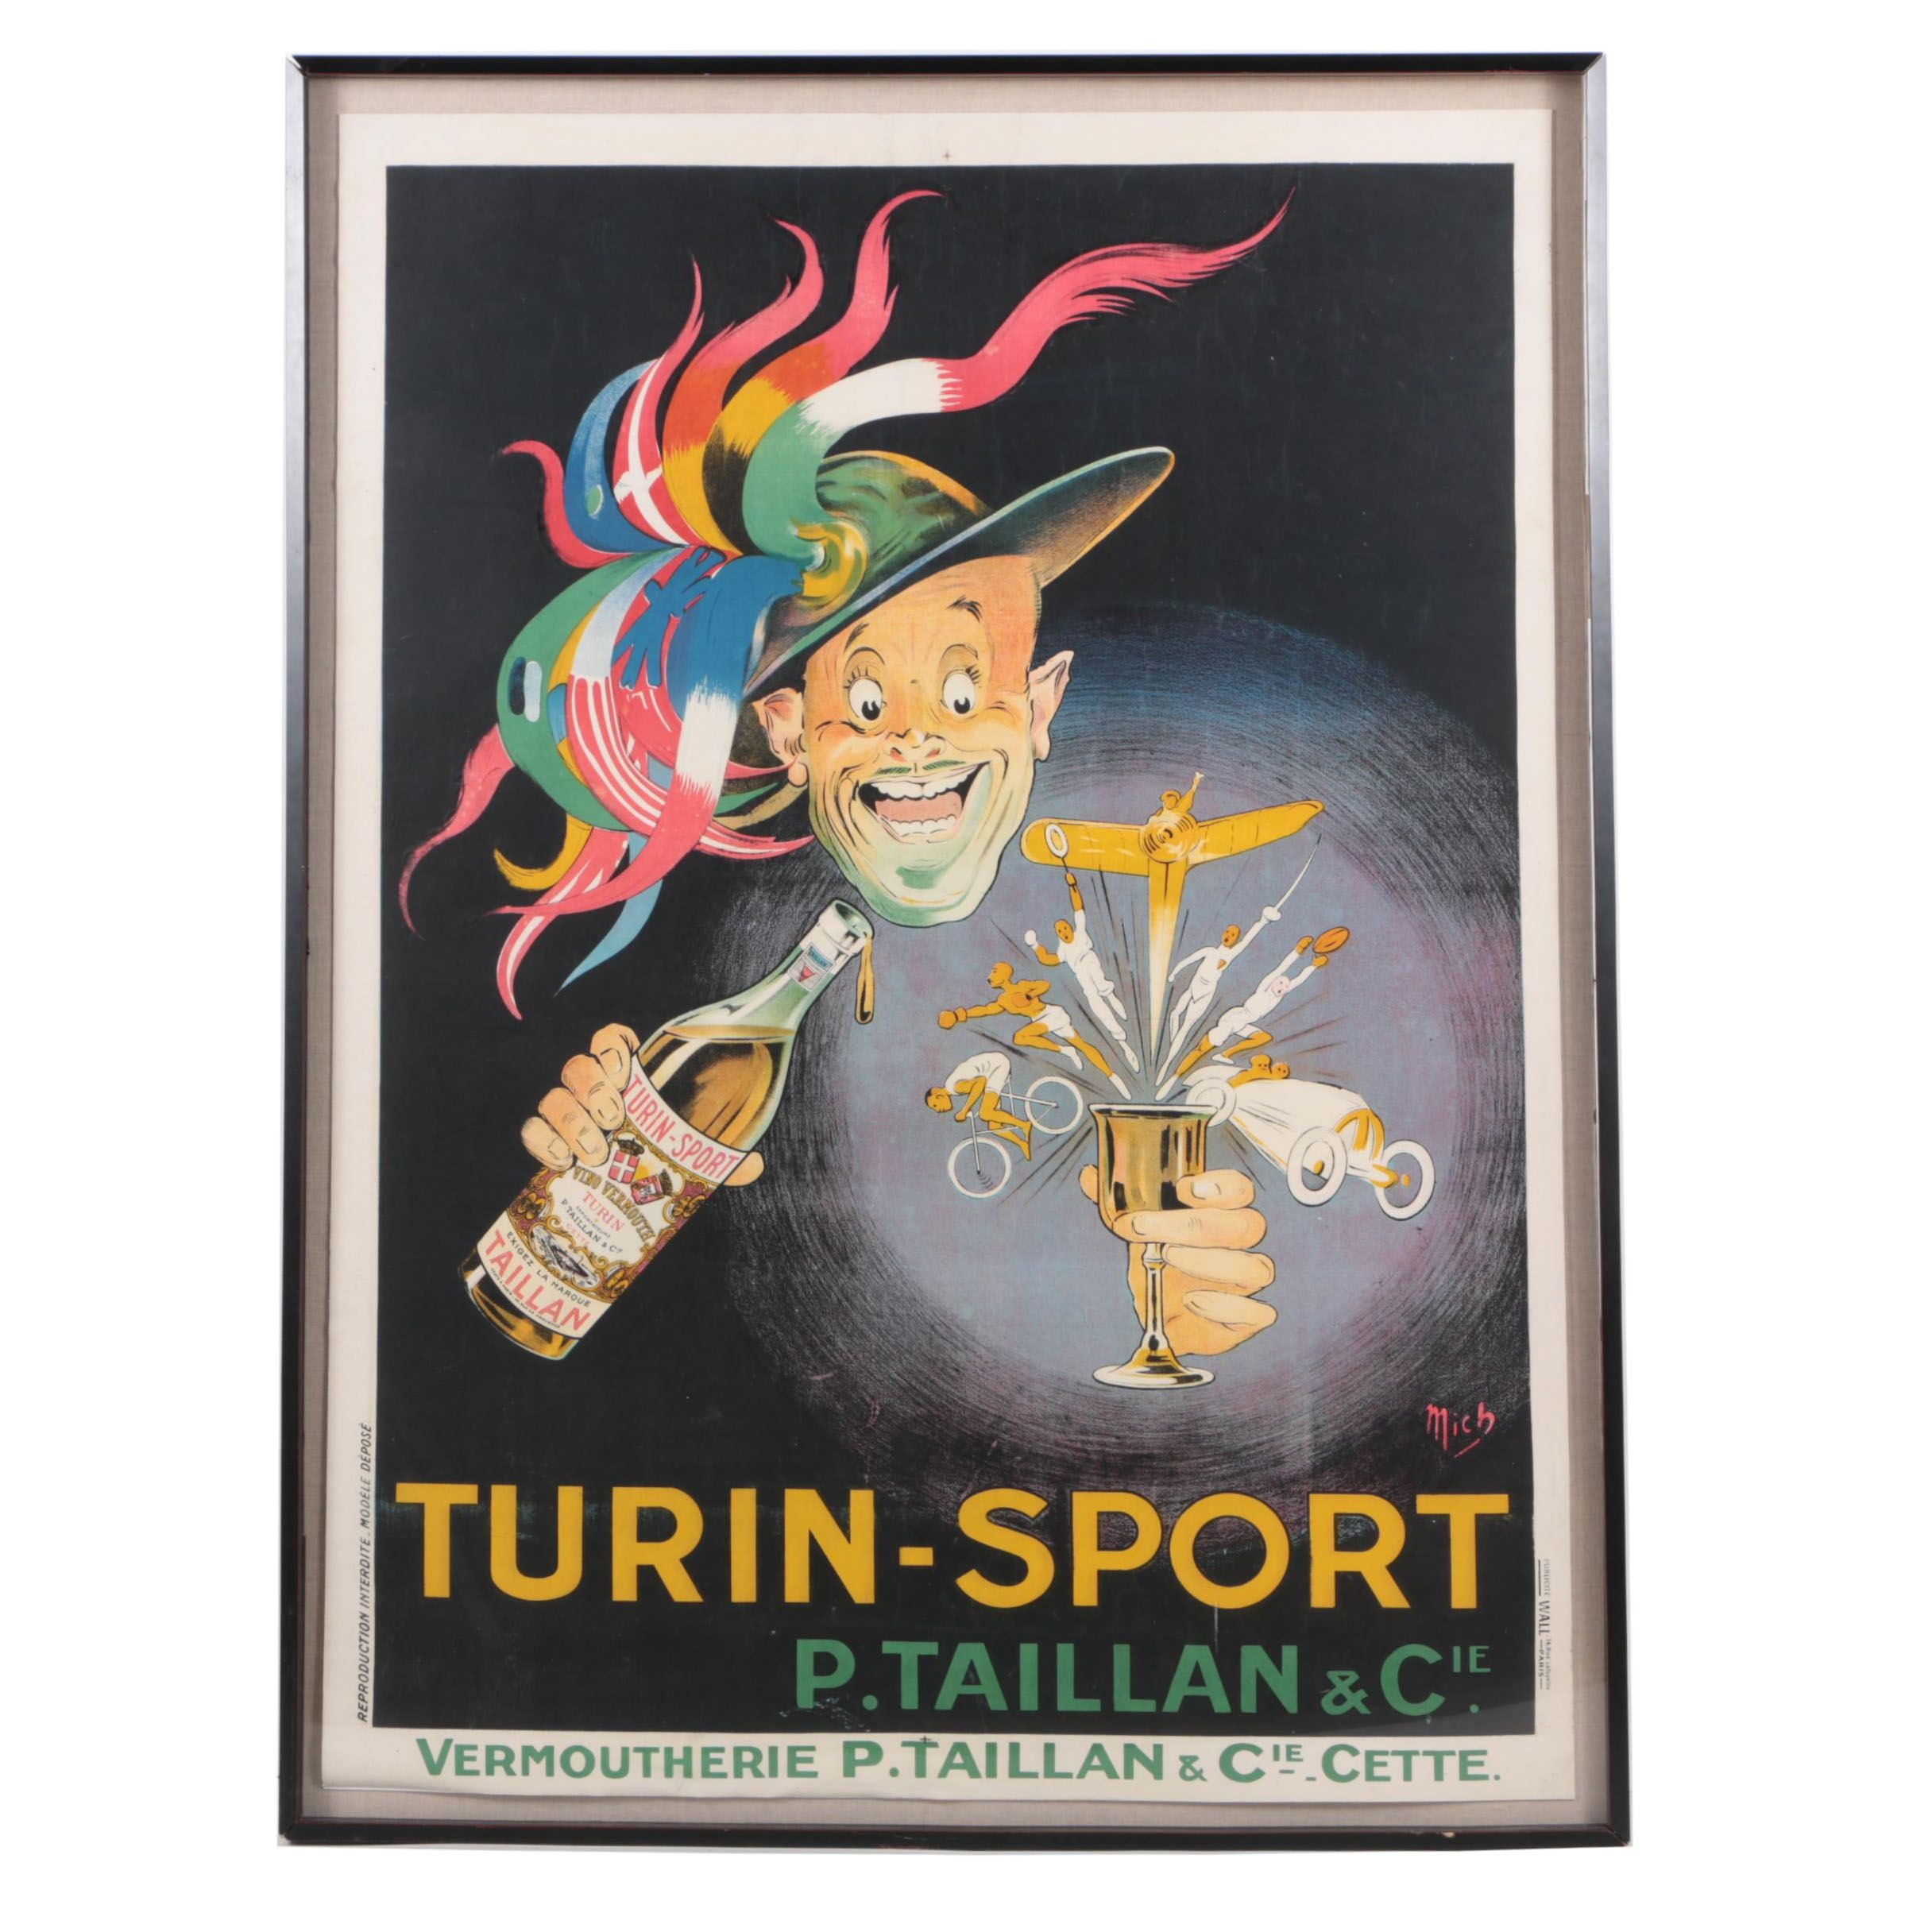 Circa 1920s Lithograph Poster on Paper for Turin-Sport Vermouth After Mich